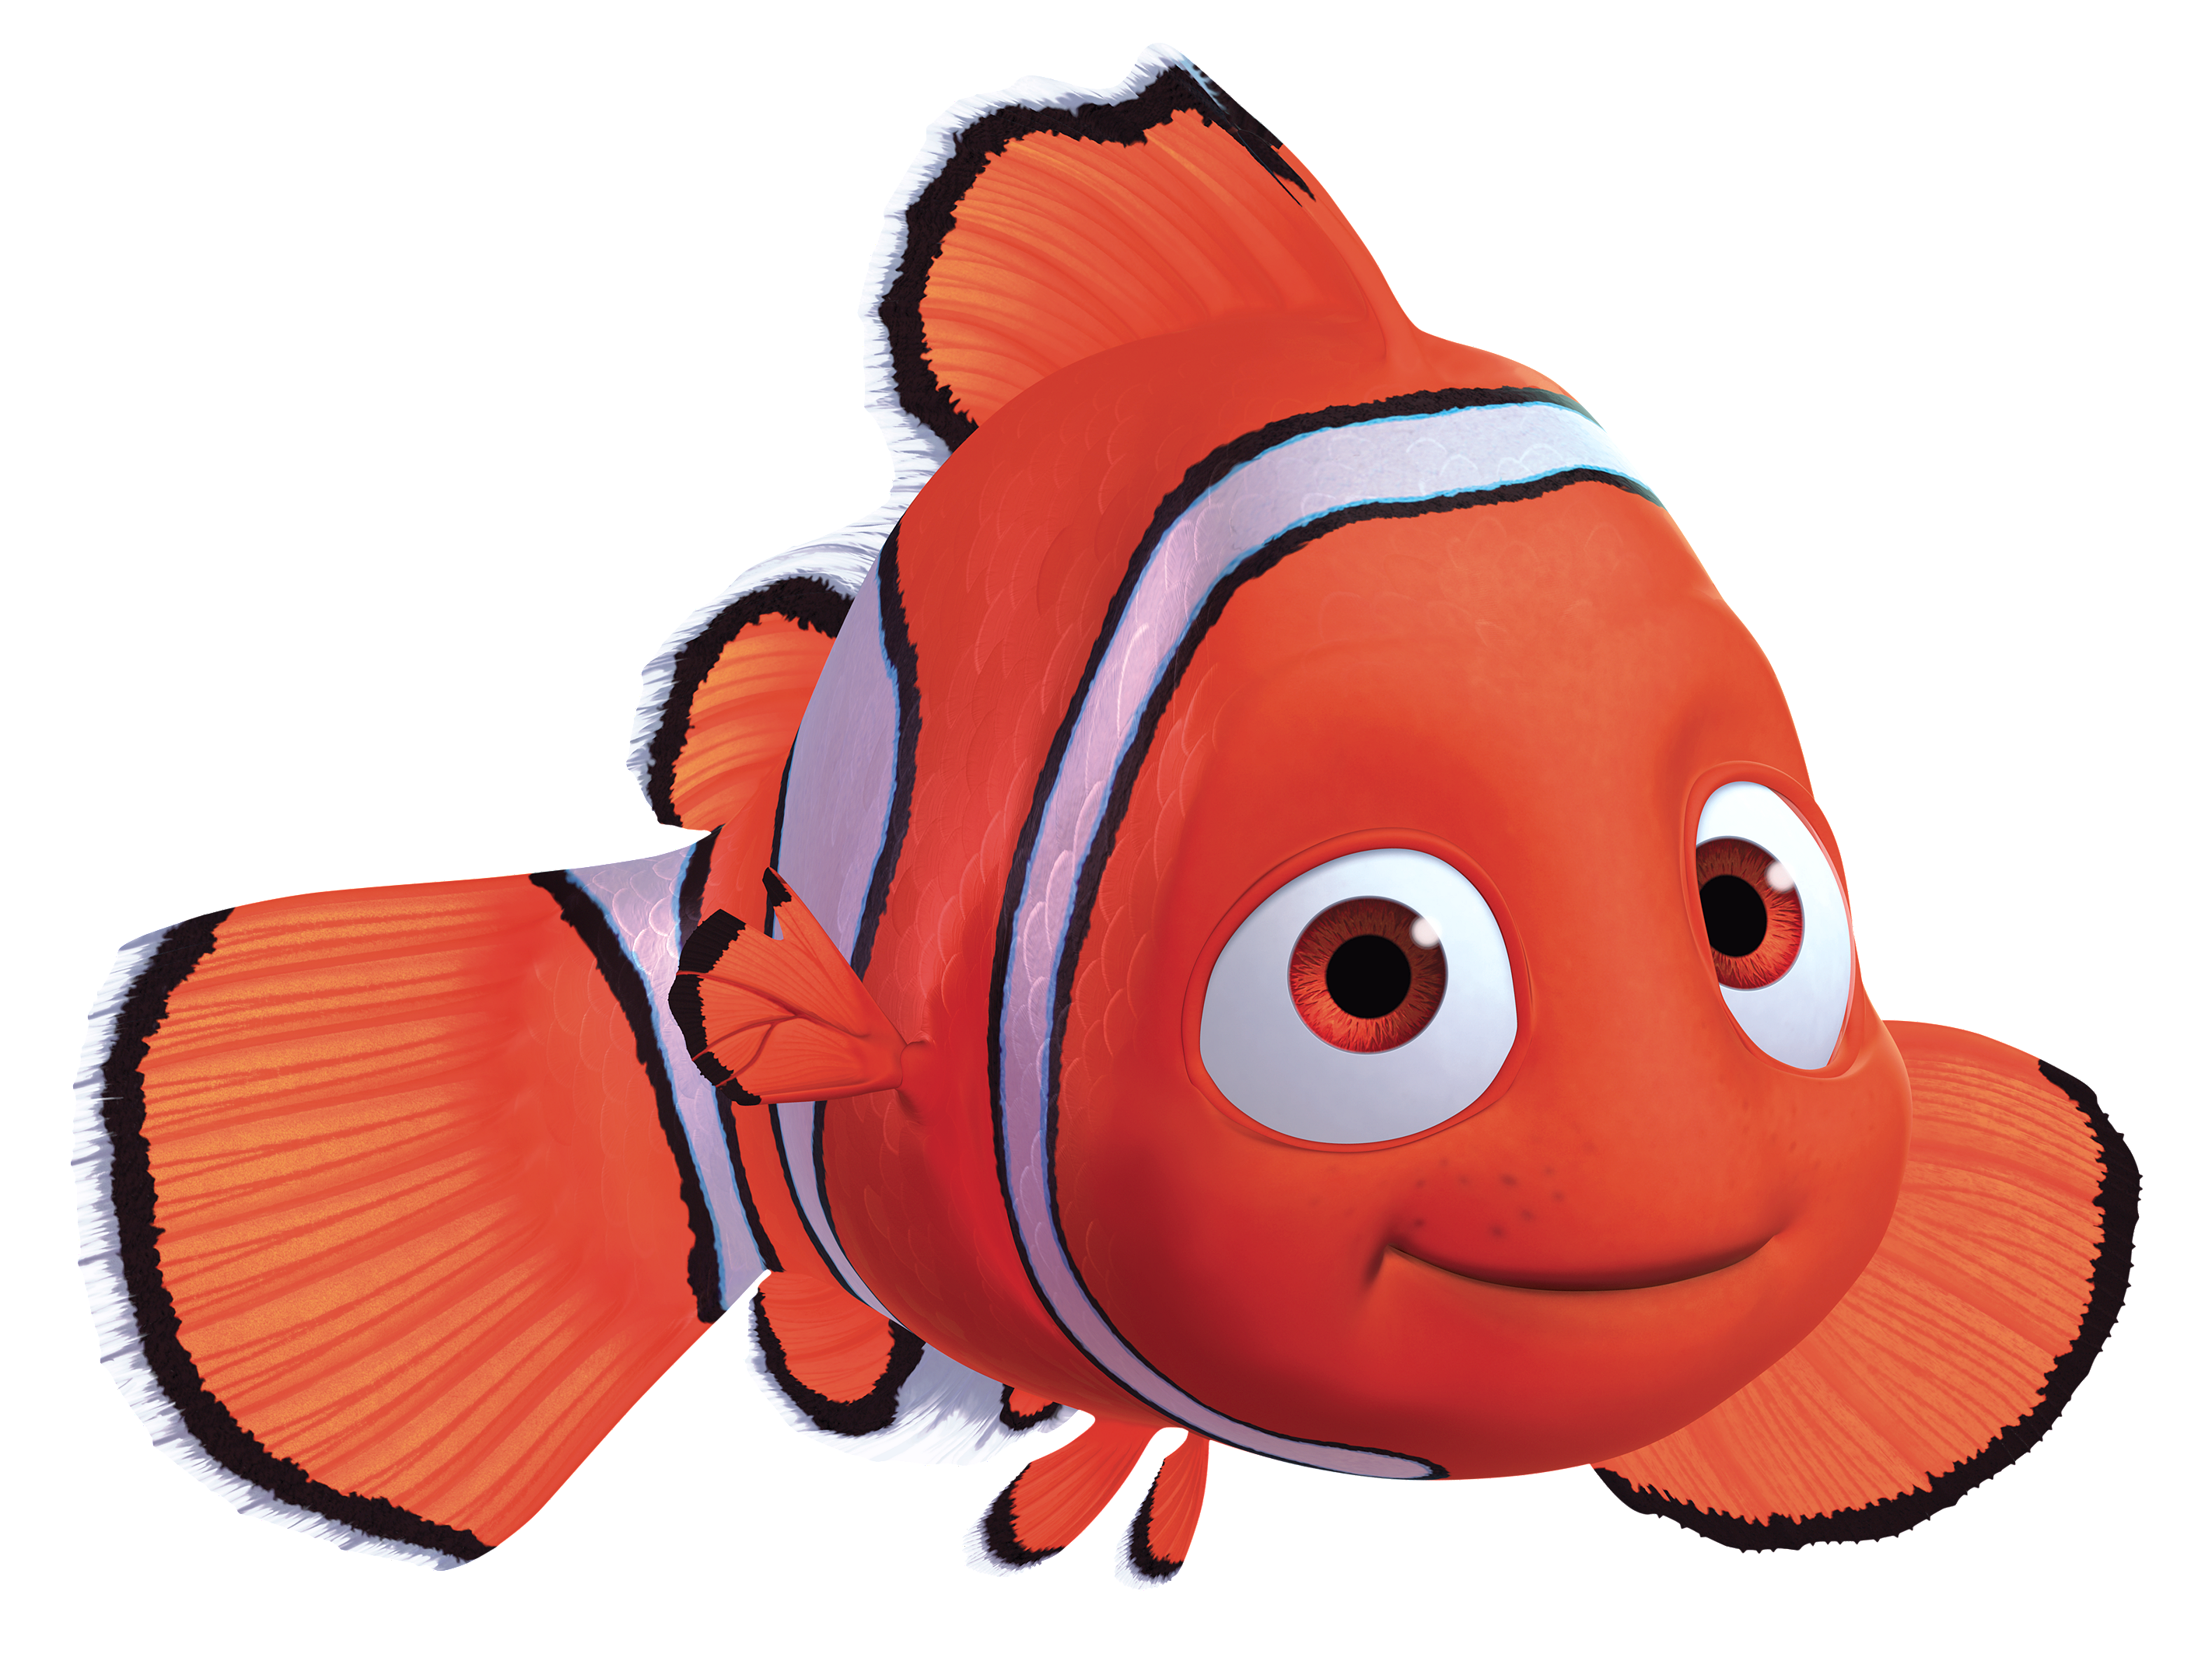 Clip Art Finding Nemo Clip Art best finding dory clipart 22302 clipartion com nemo characters free clip art images